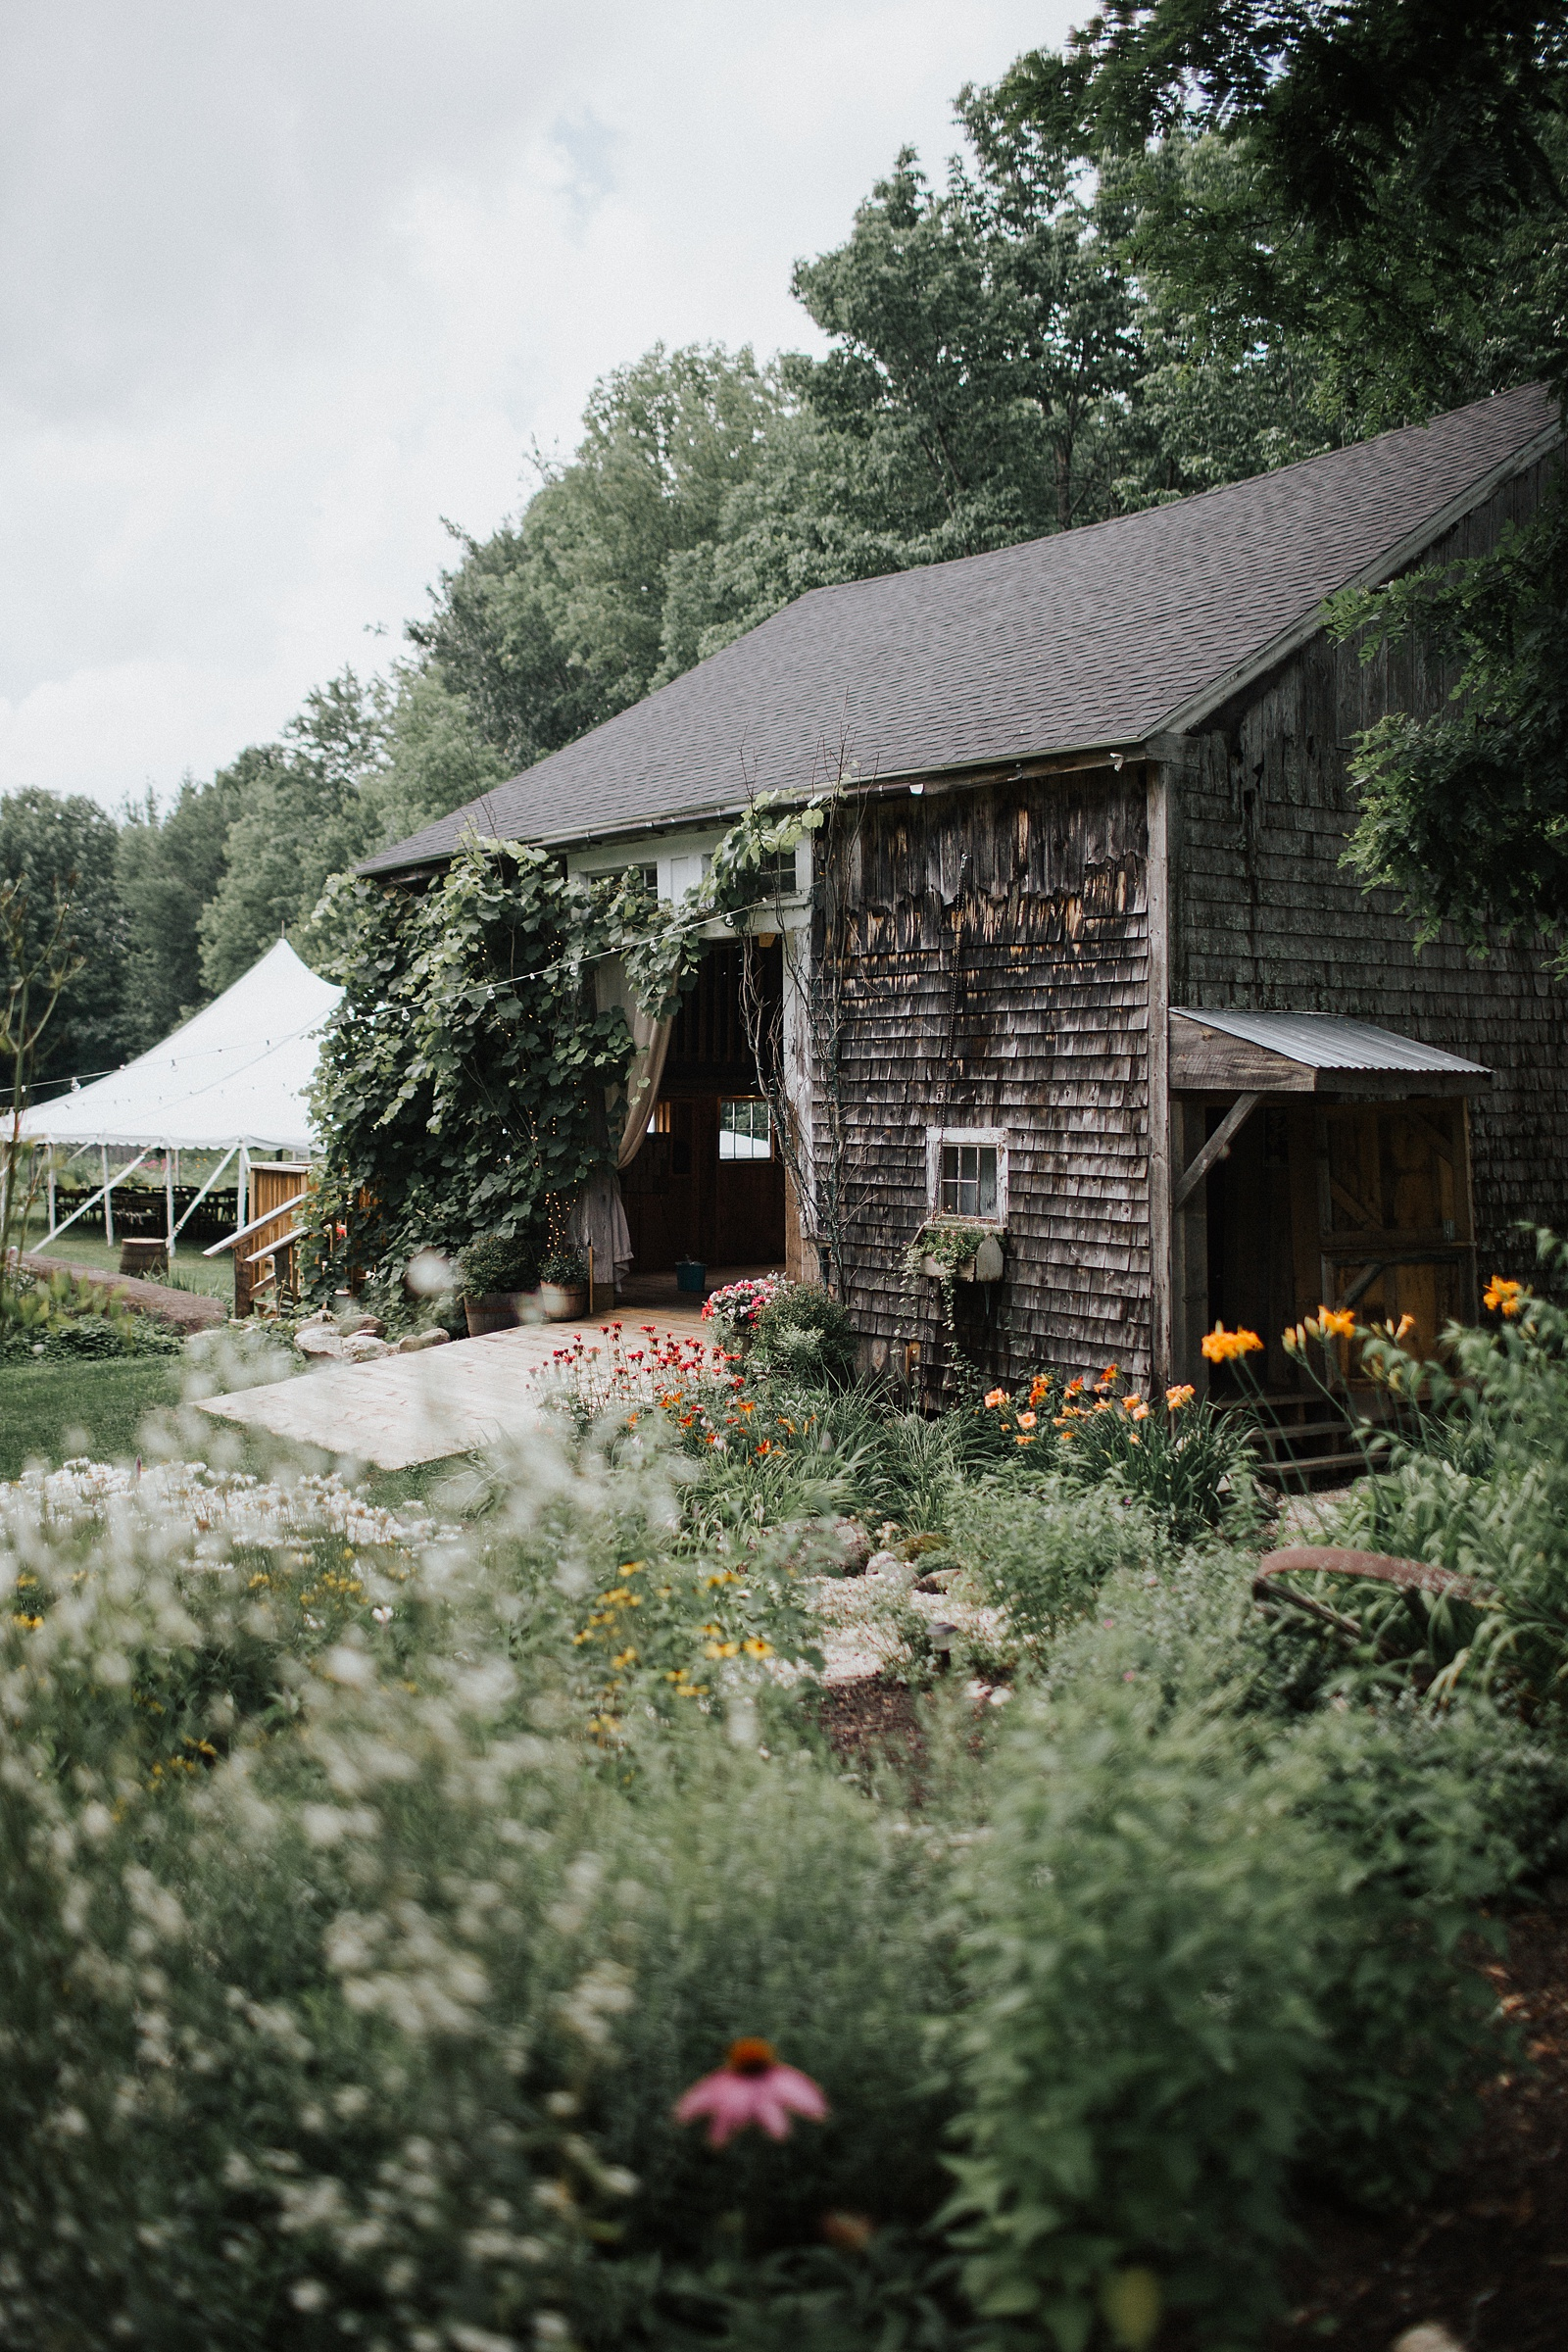 barn,bridal,caswell farm,documentary,donut,fine art,garden,maine,portland,summer,toasts,wedding,